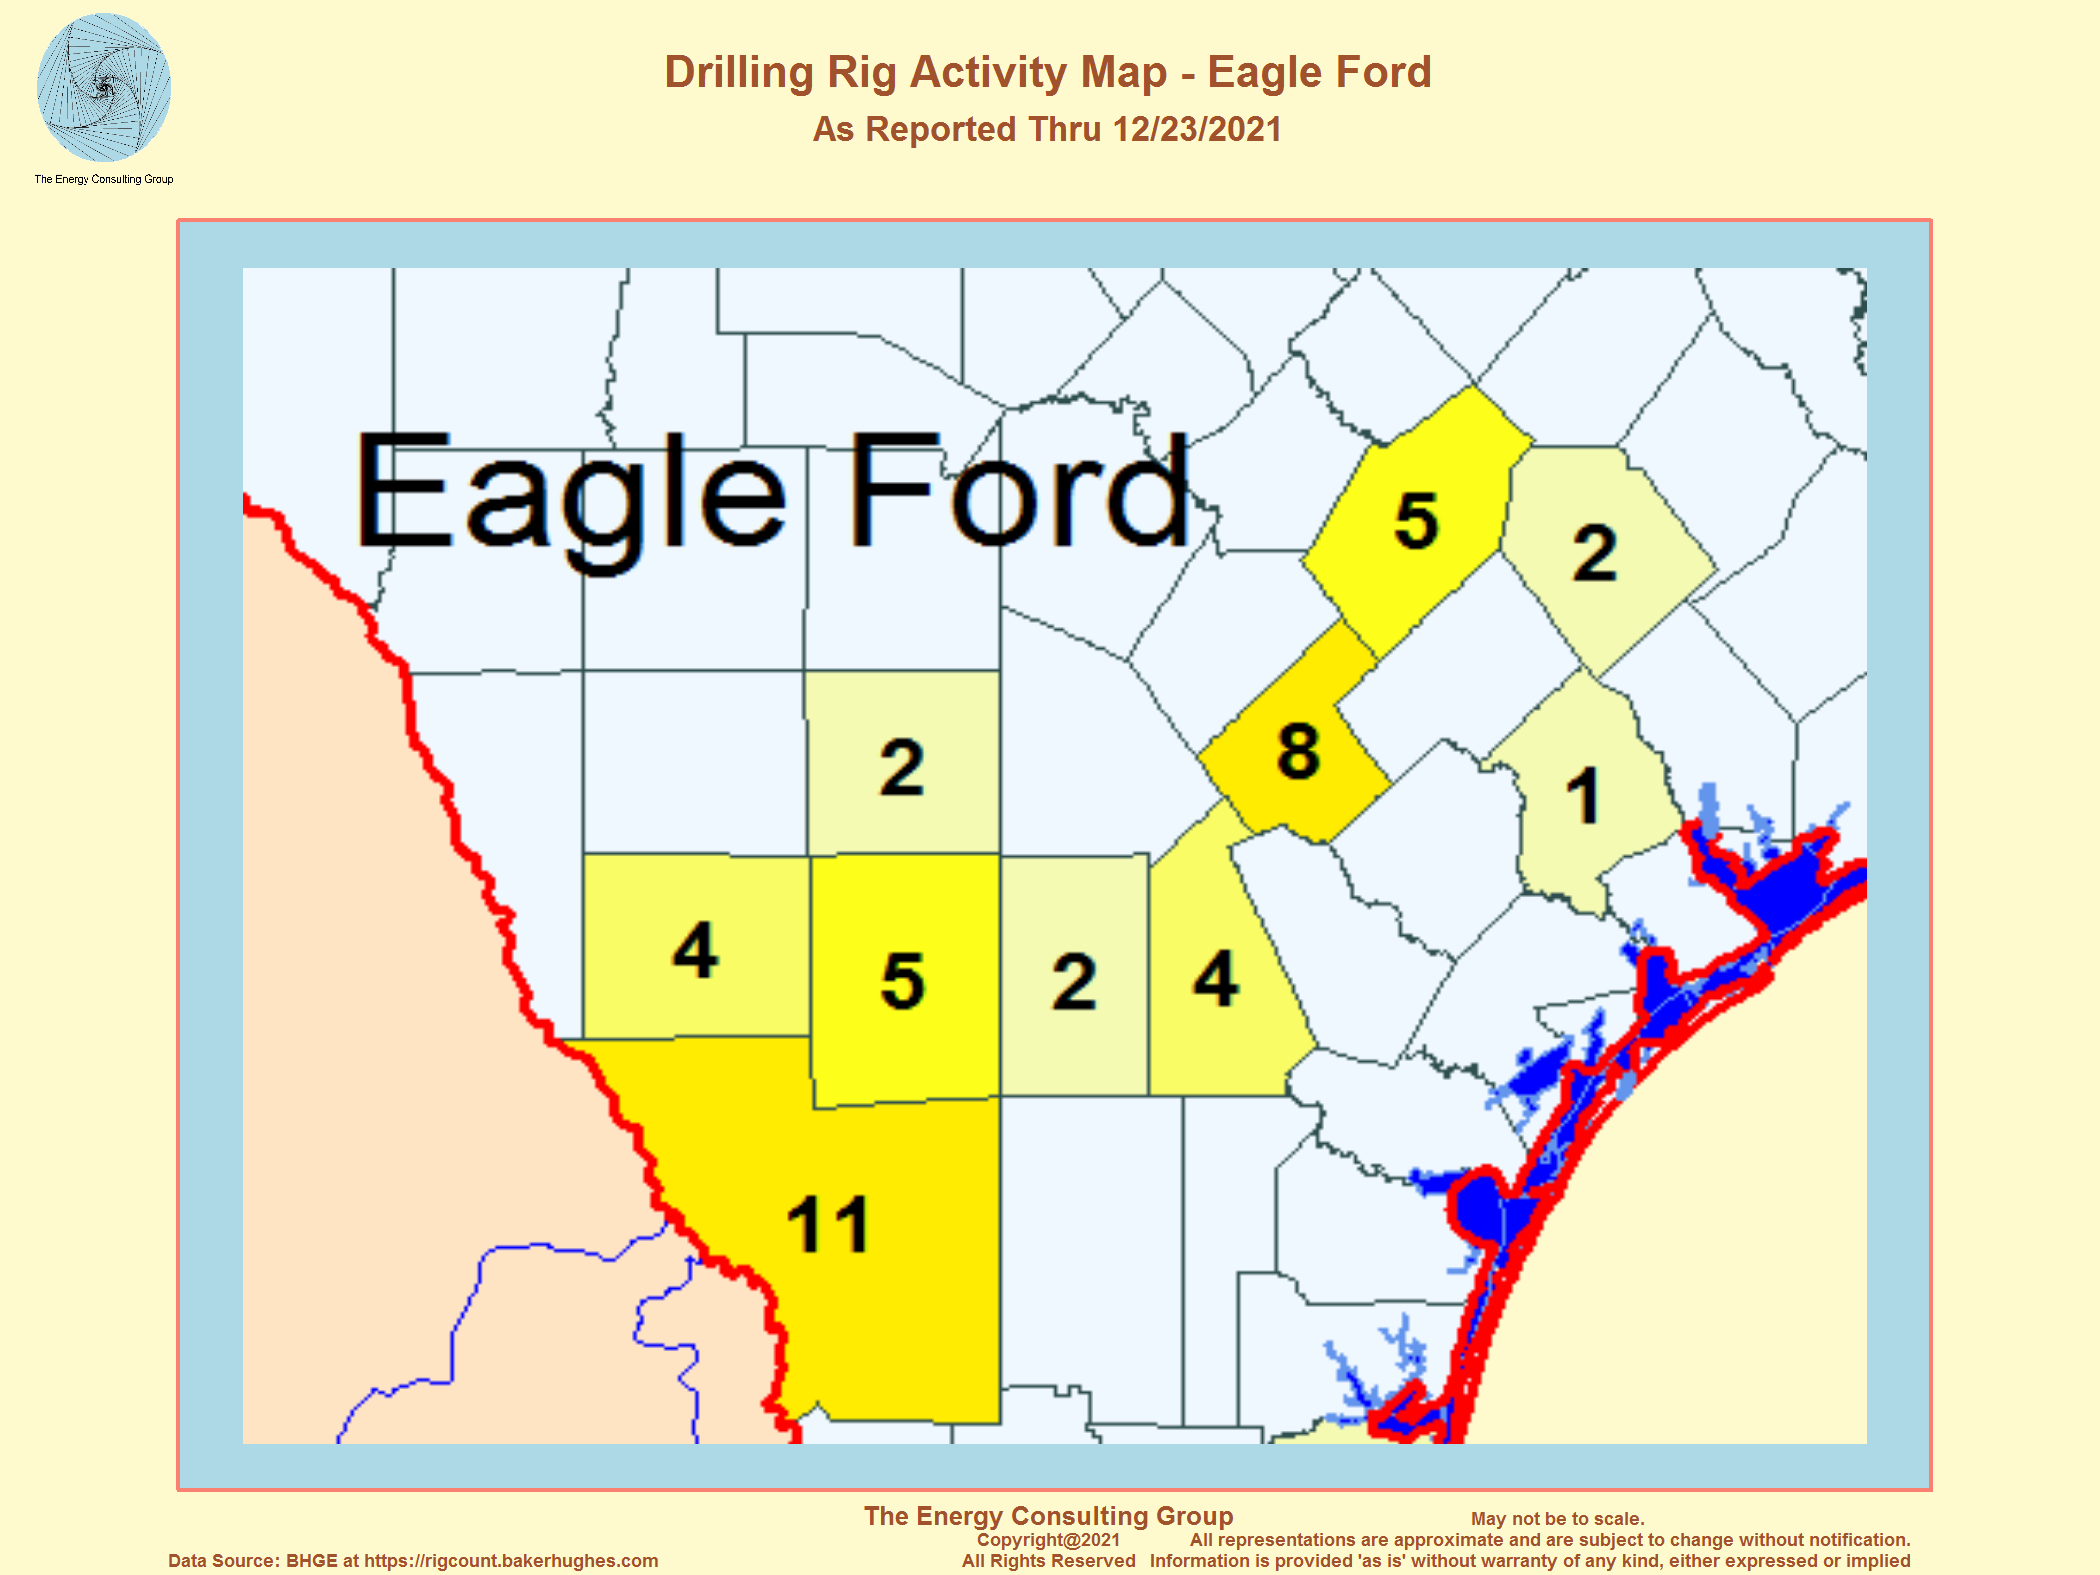 United States Oil and Gas Drilling Activity